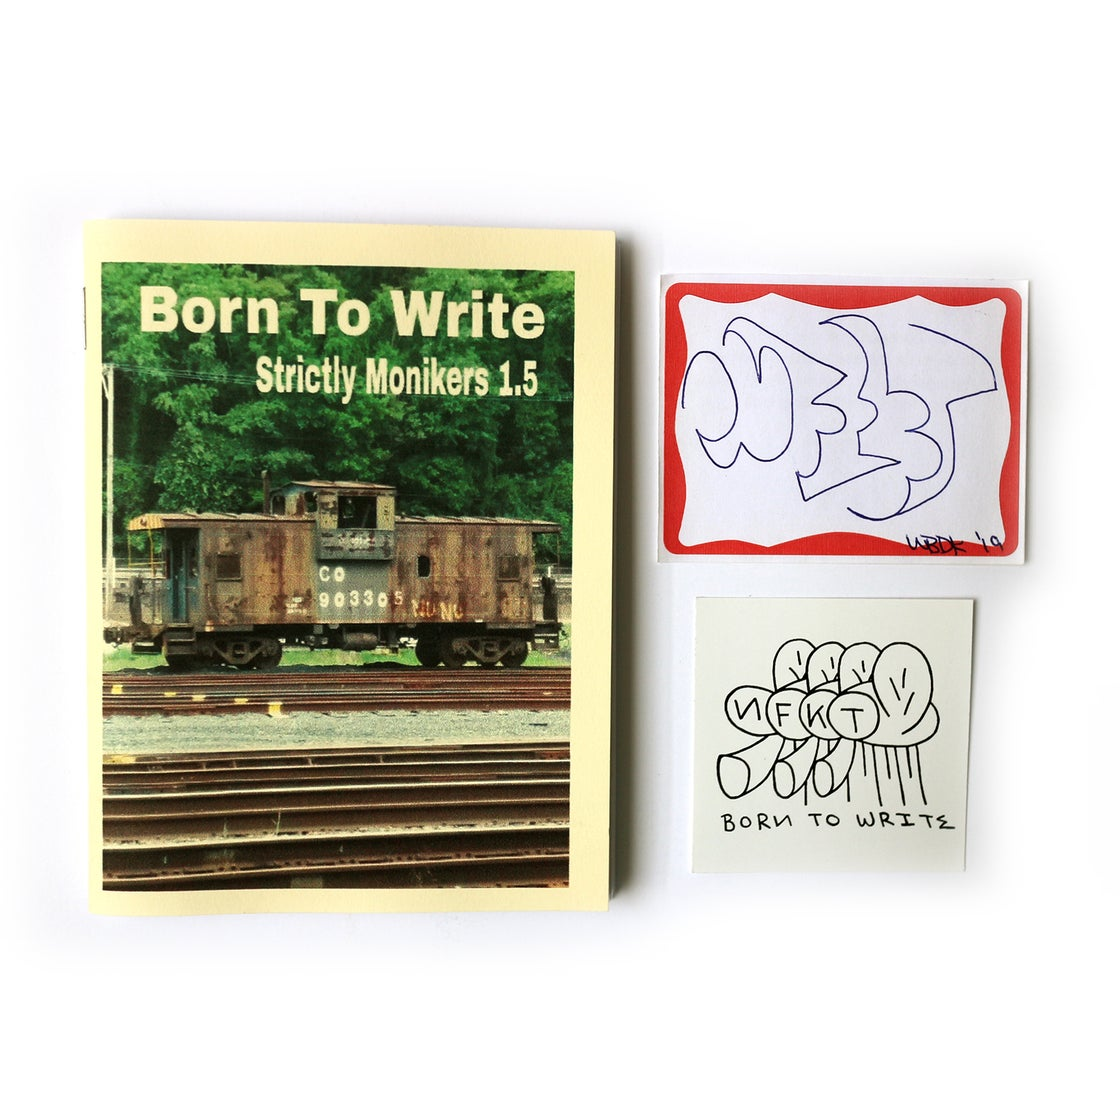 Image of BORN TO WRITE, STRICTLY MONIKERS 1.5 - NFKT